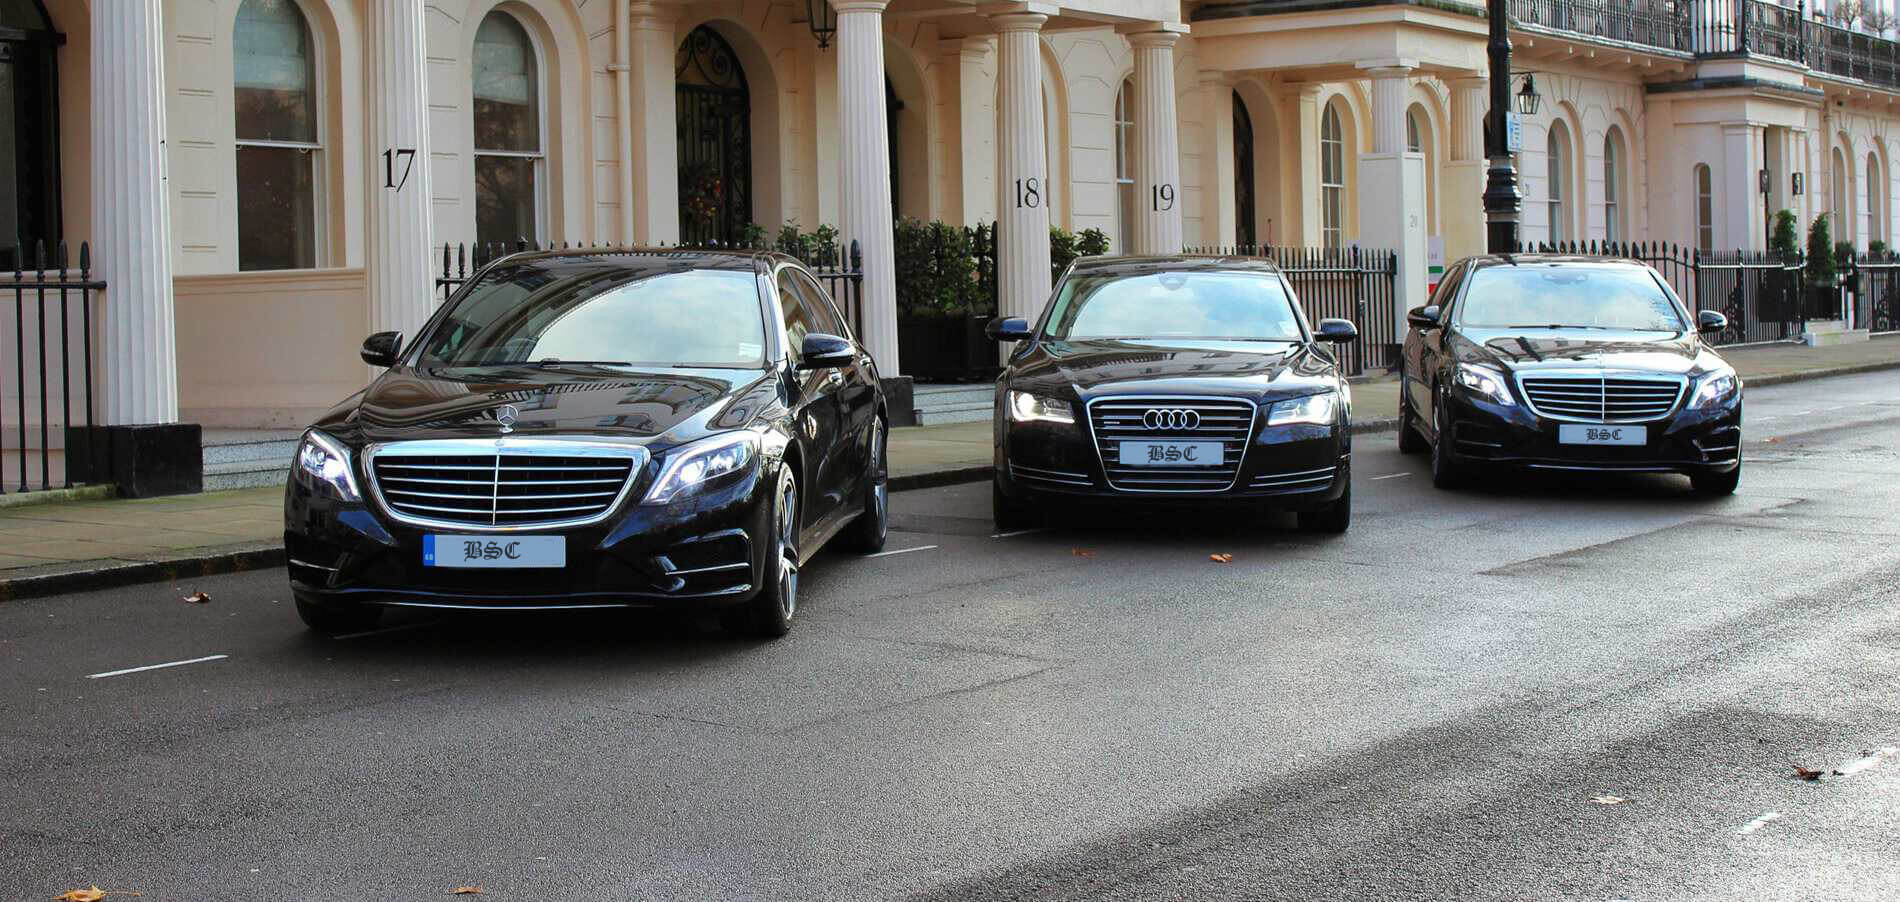 chauffeured cars sydney